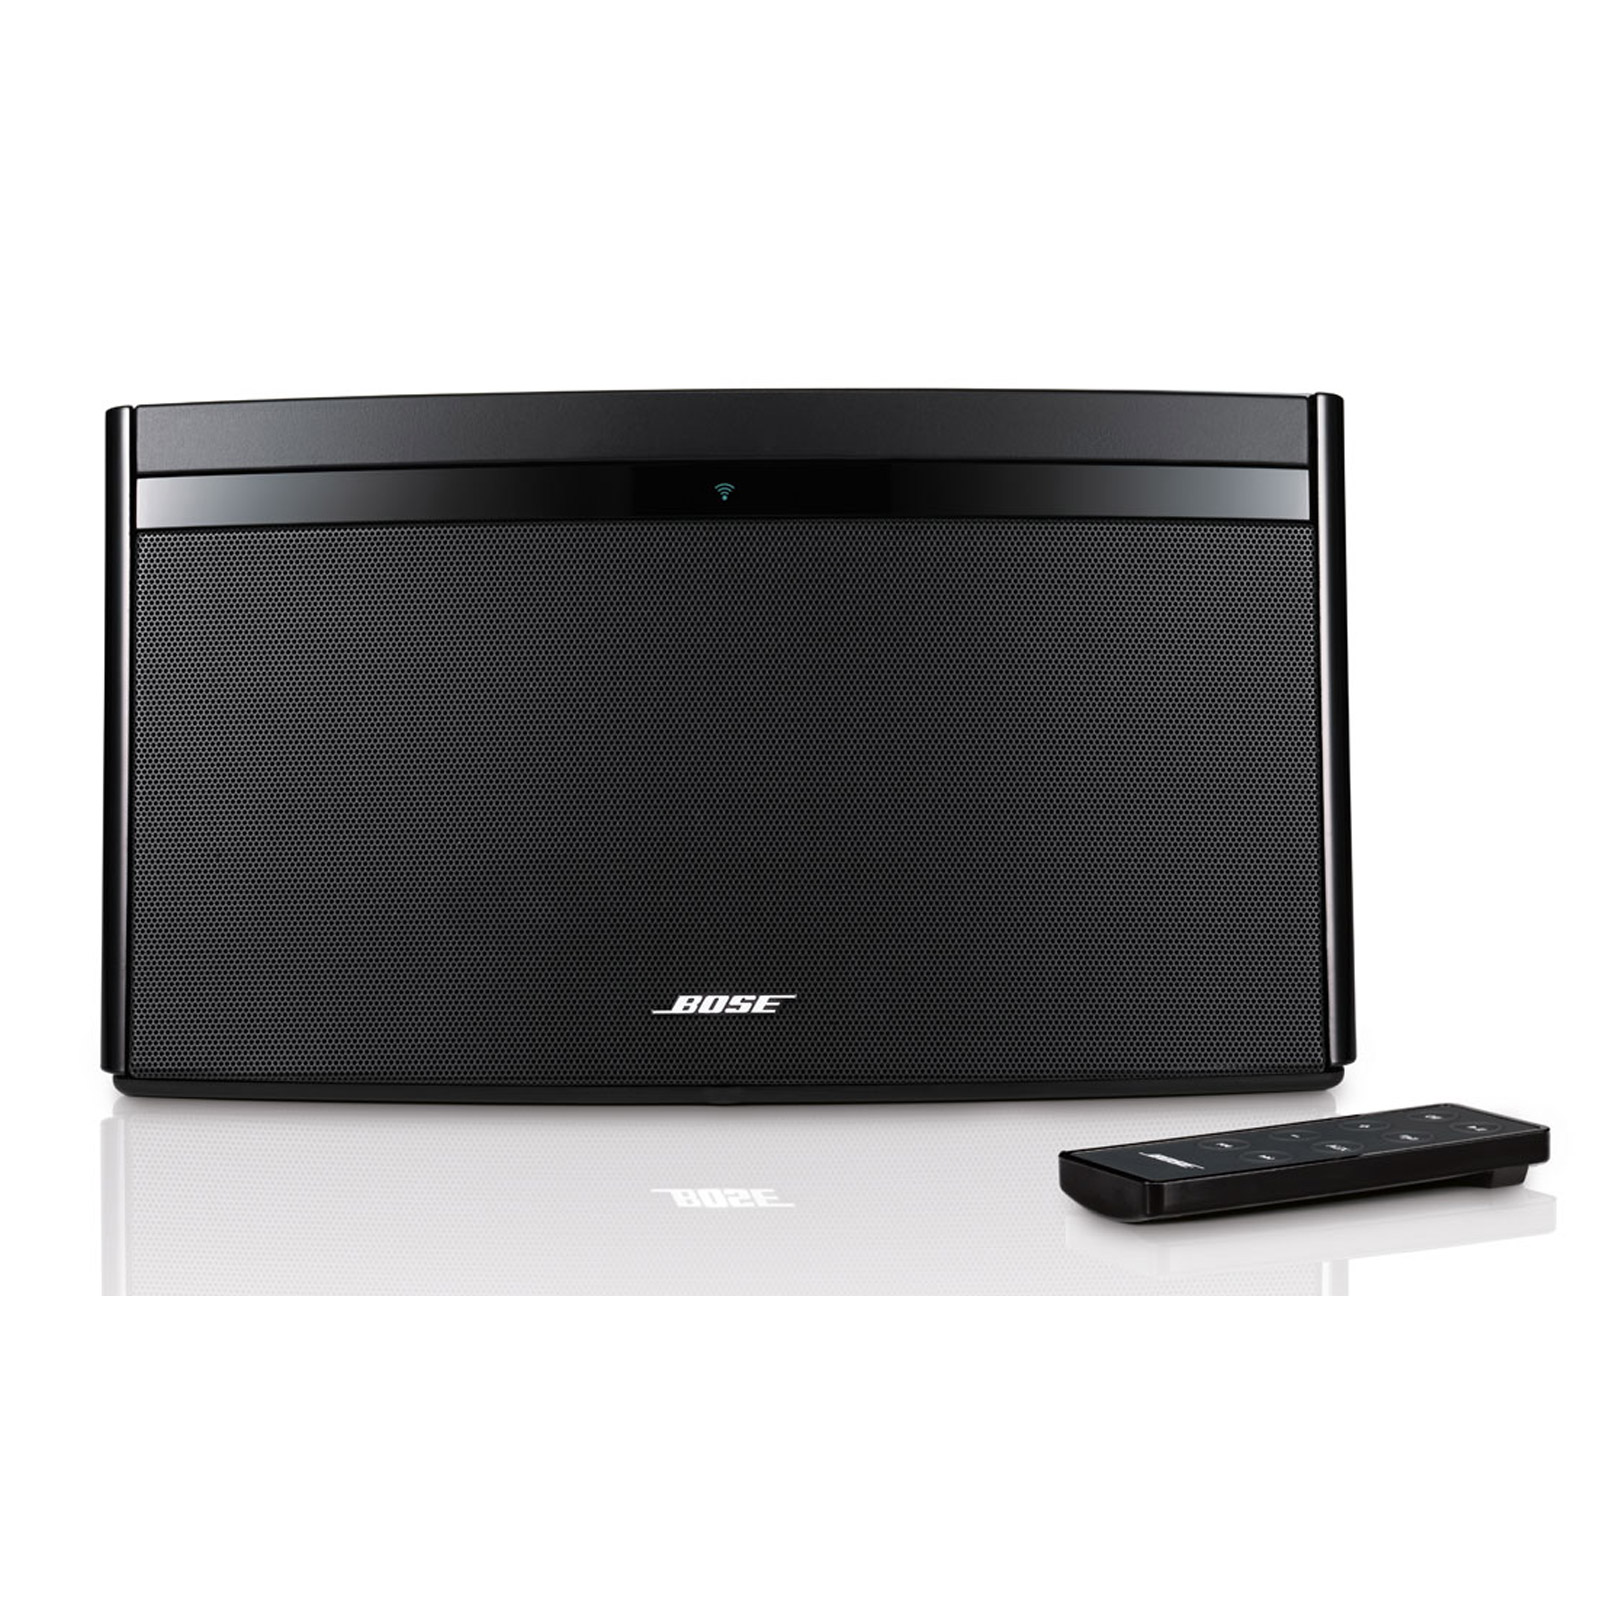 bose soundlink air dock enceinte bluetooth bose sur ldlc. Black Bedroom Furniture Sets. Home Design Ideas